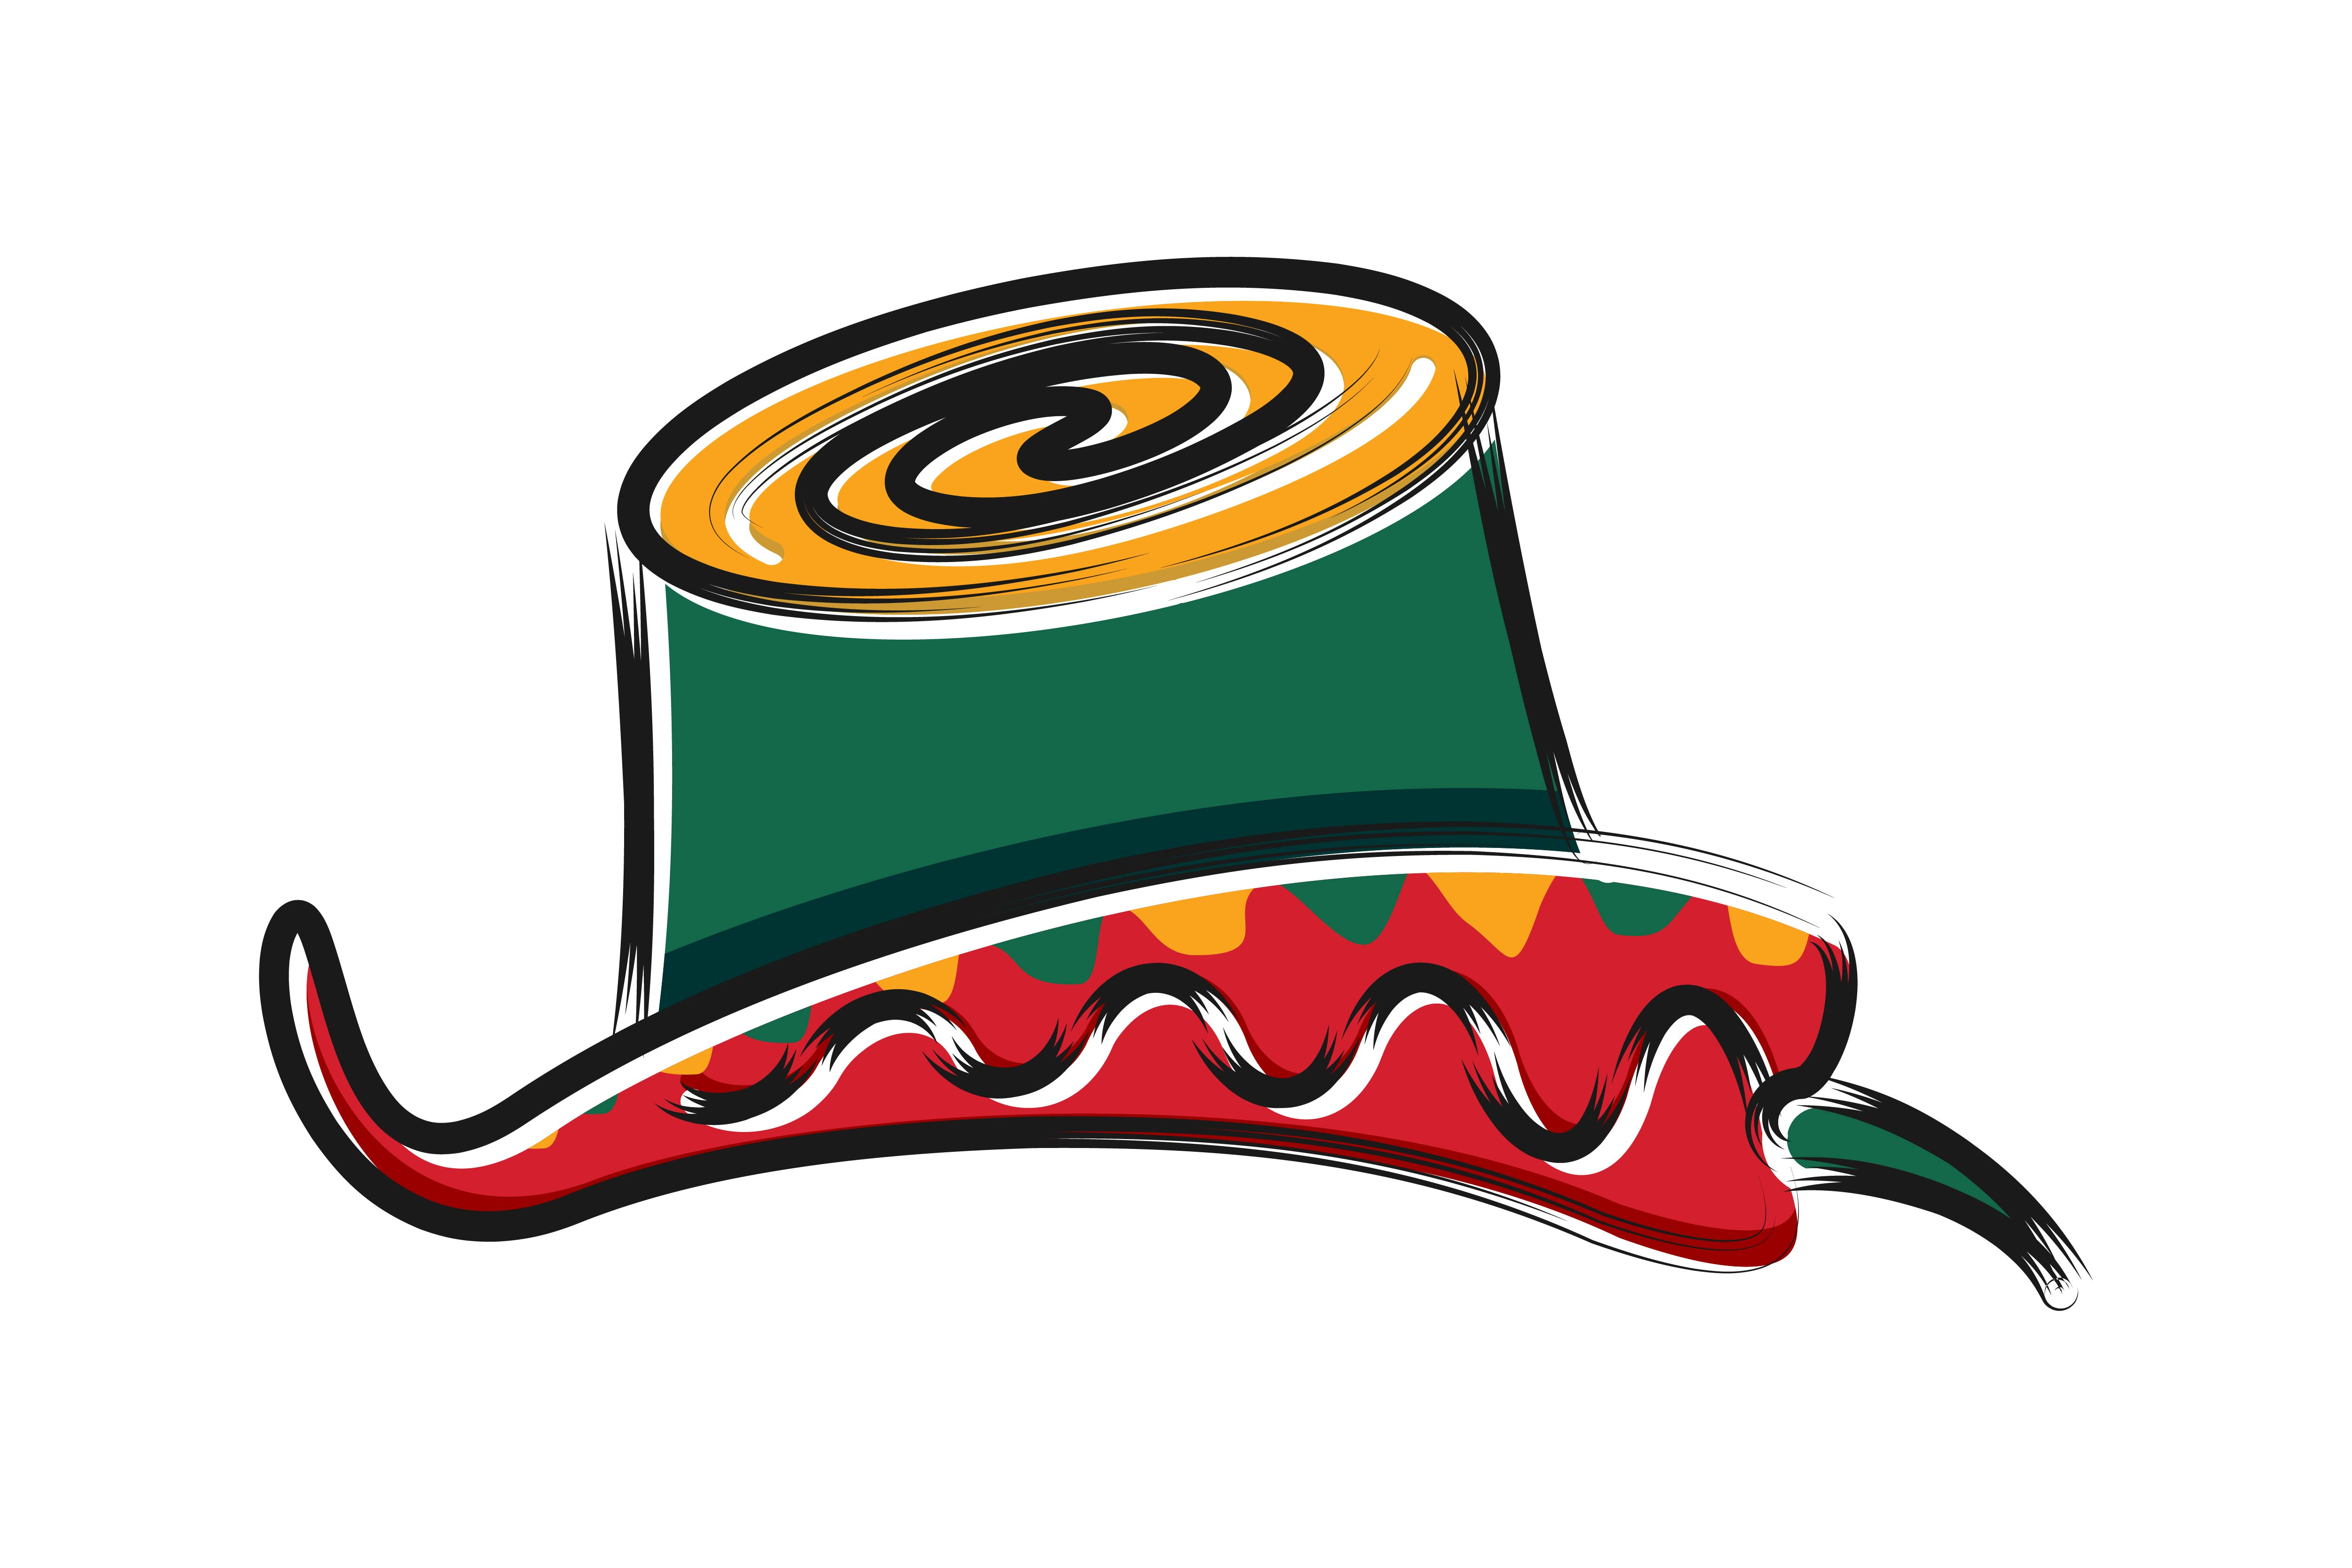 Chili and hat Mexican Logo Graphic by yahyaanasatokillah - Creative Fabrica aa9e59851d03